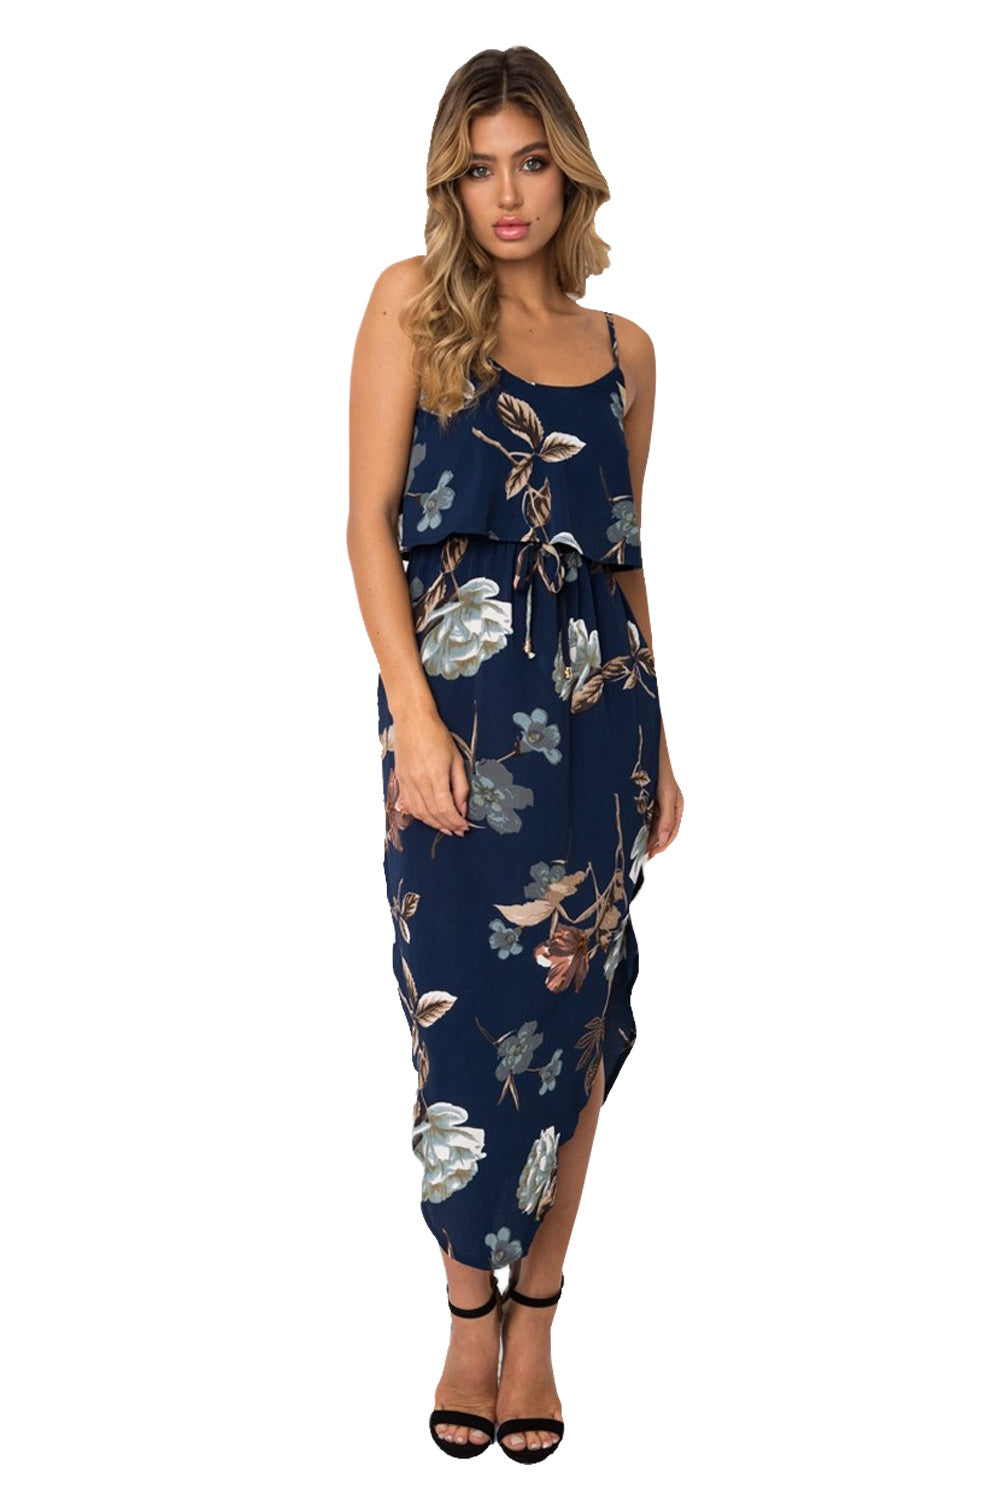 Navy Floral Print Summer Holiday Party Boho Dress